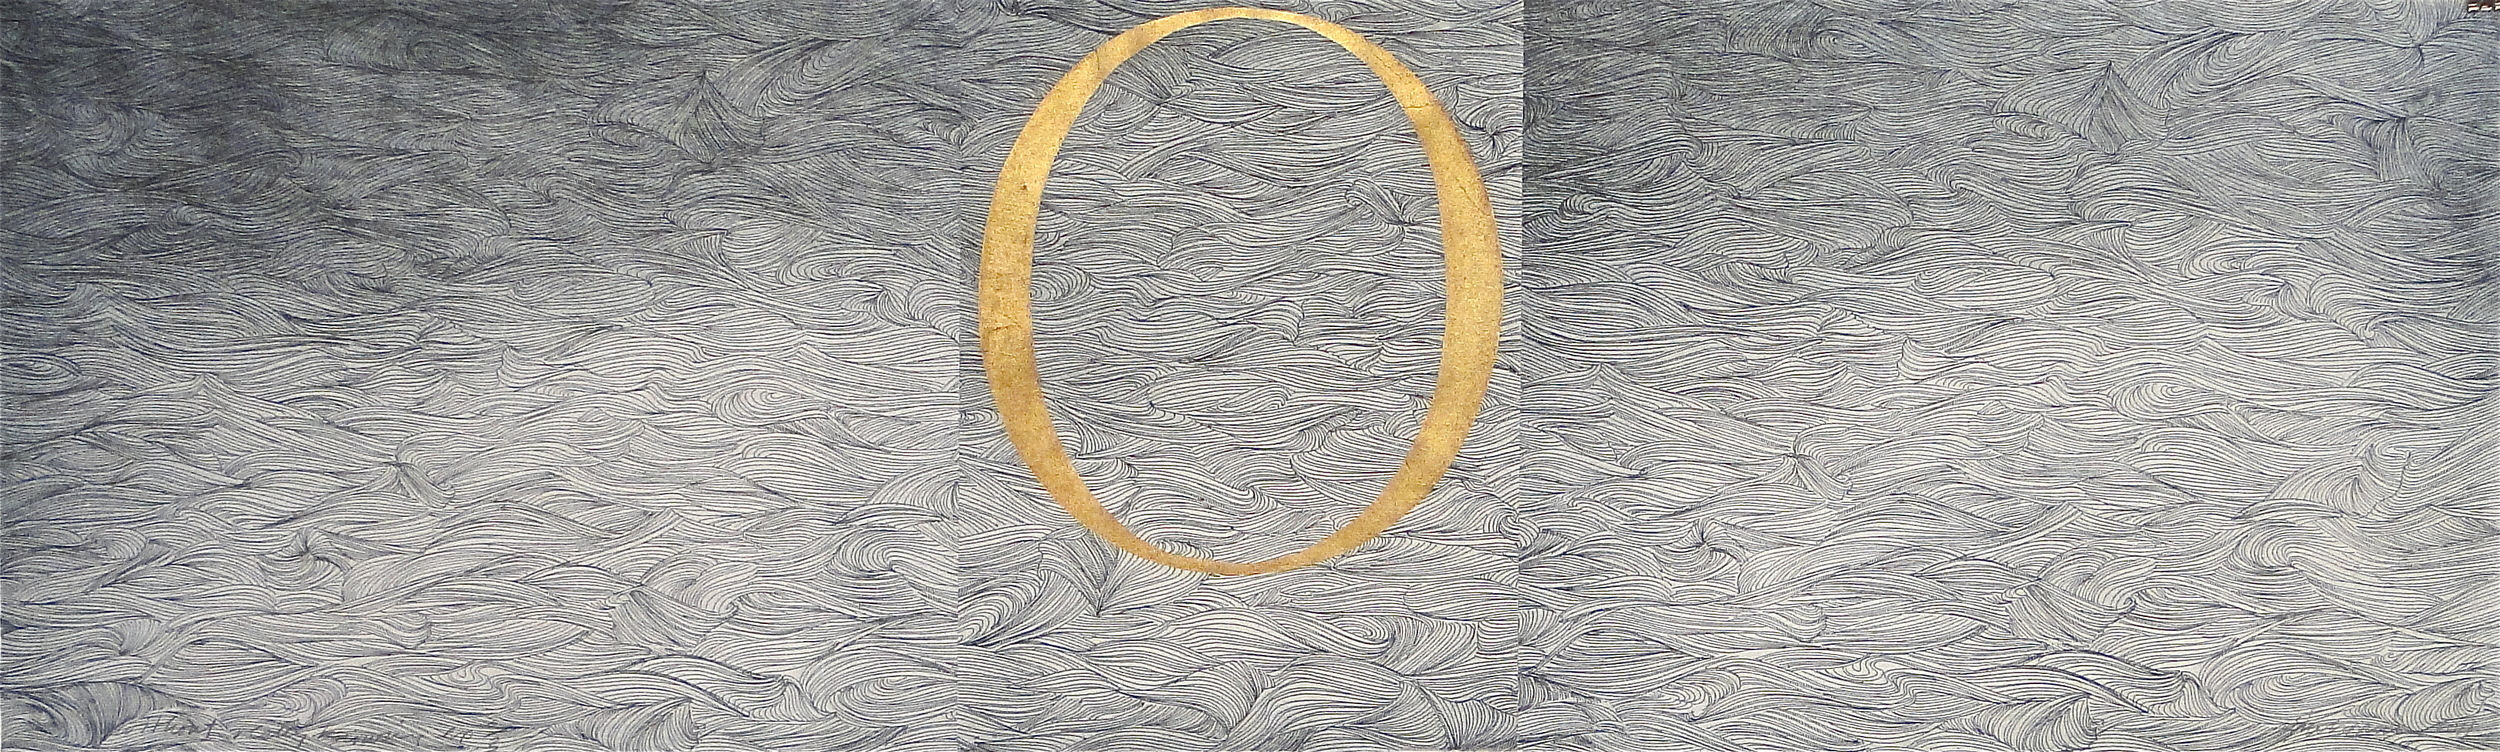 """Steven Sorman, """"without really knowing,"""" 2011  etching, woodcut, with bronze powder  17"""" x 52"""""""